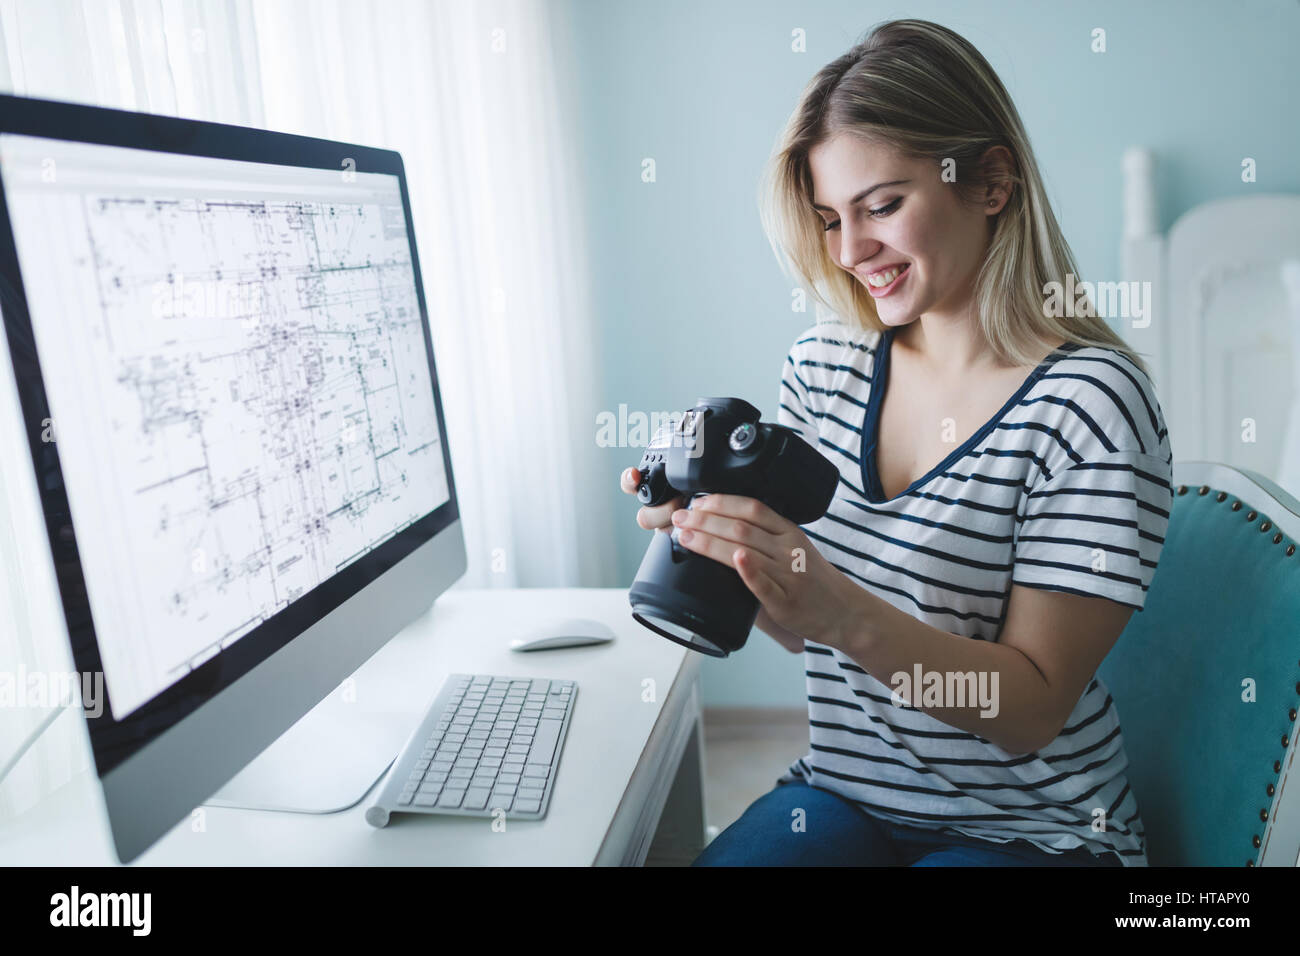 Designer and photographer woman looking at dslr camera - Stock Image